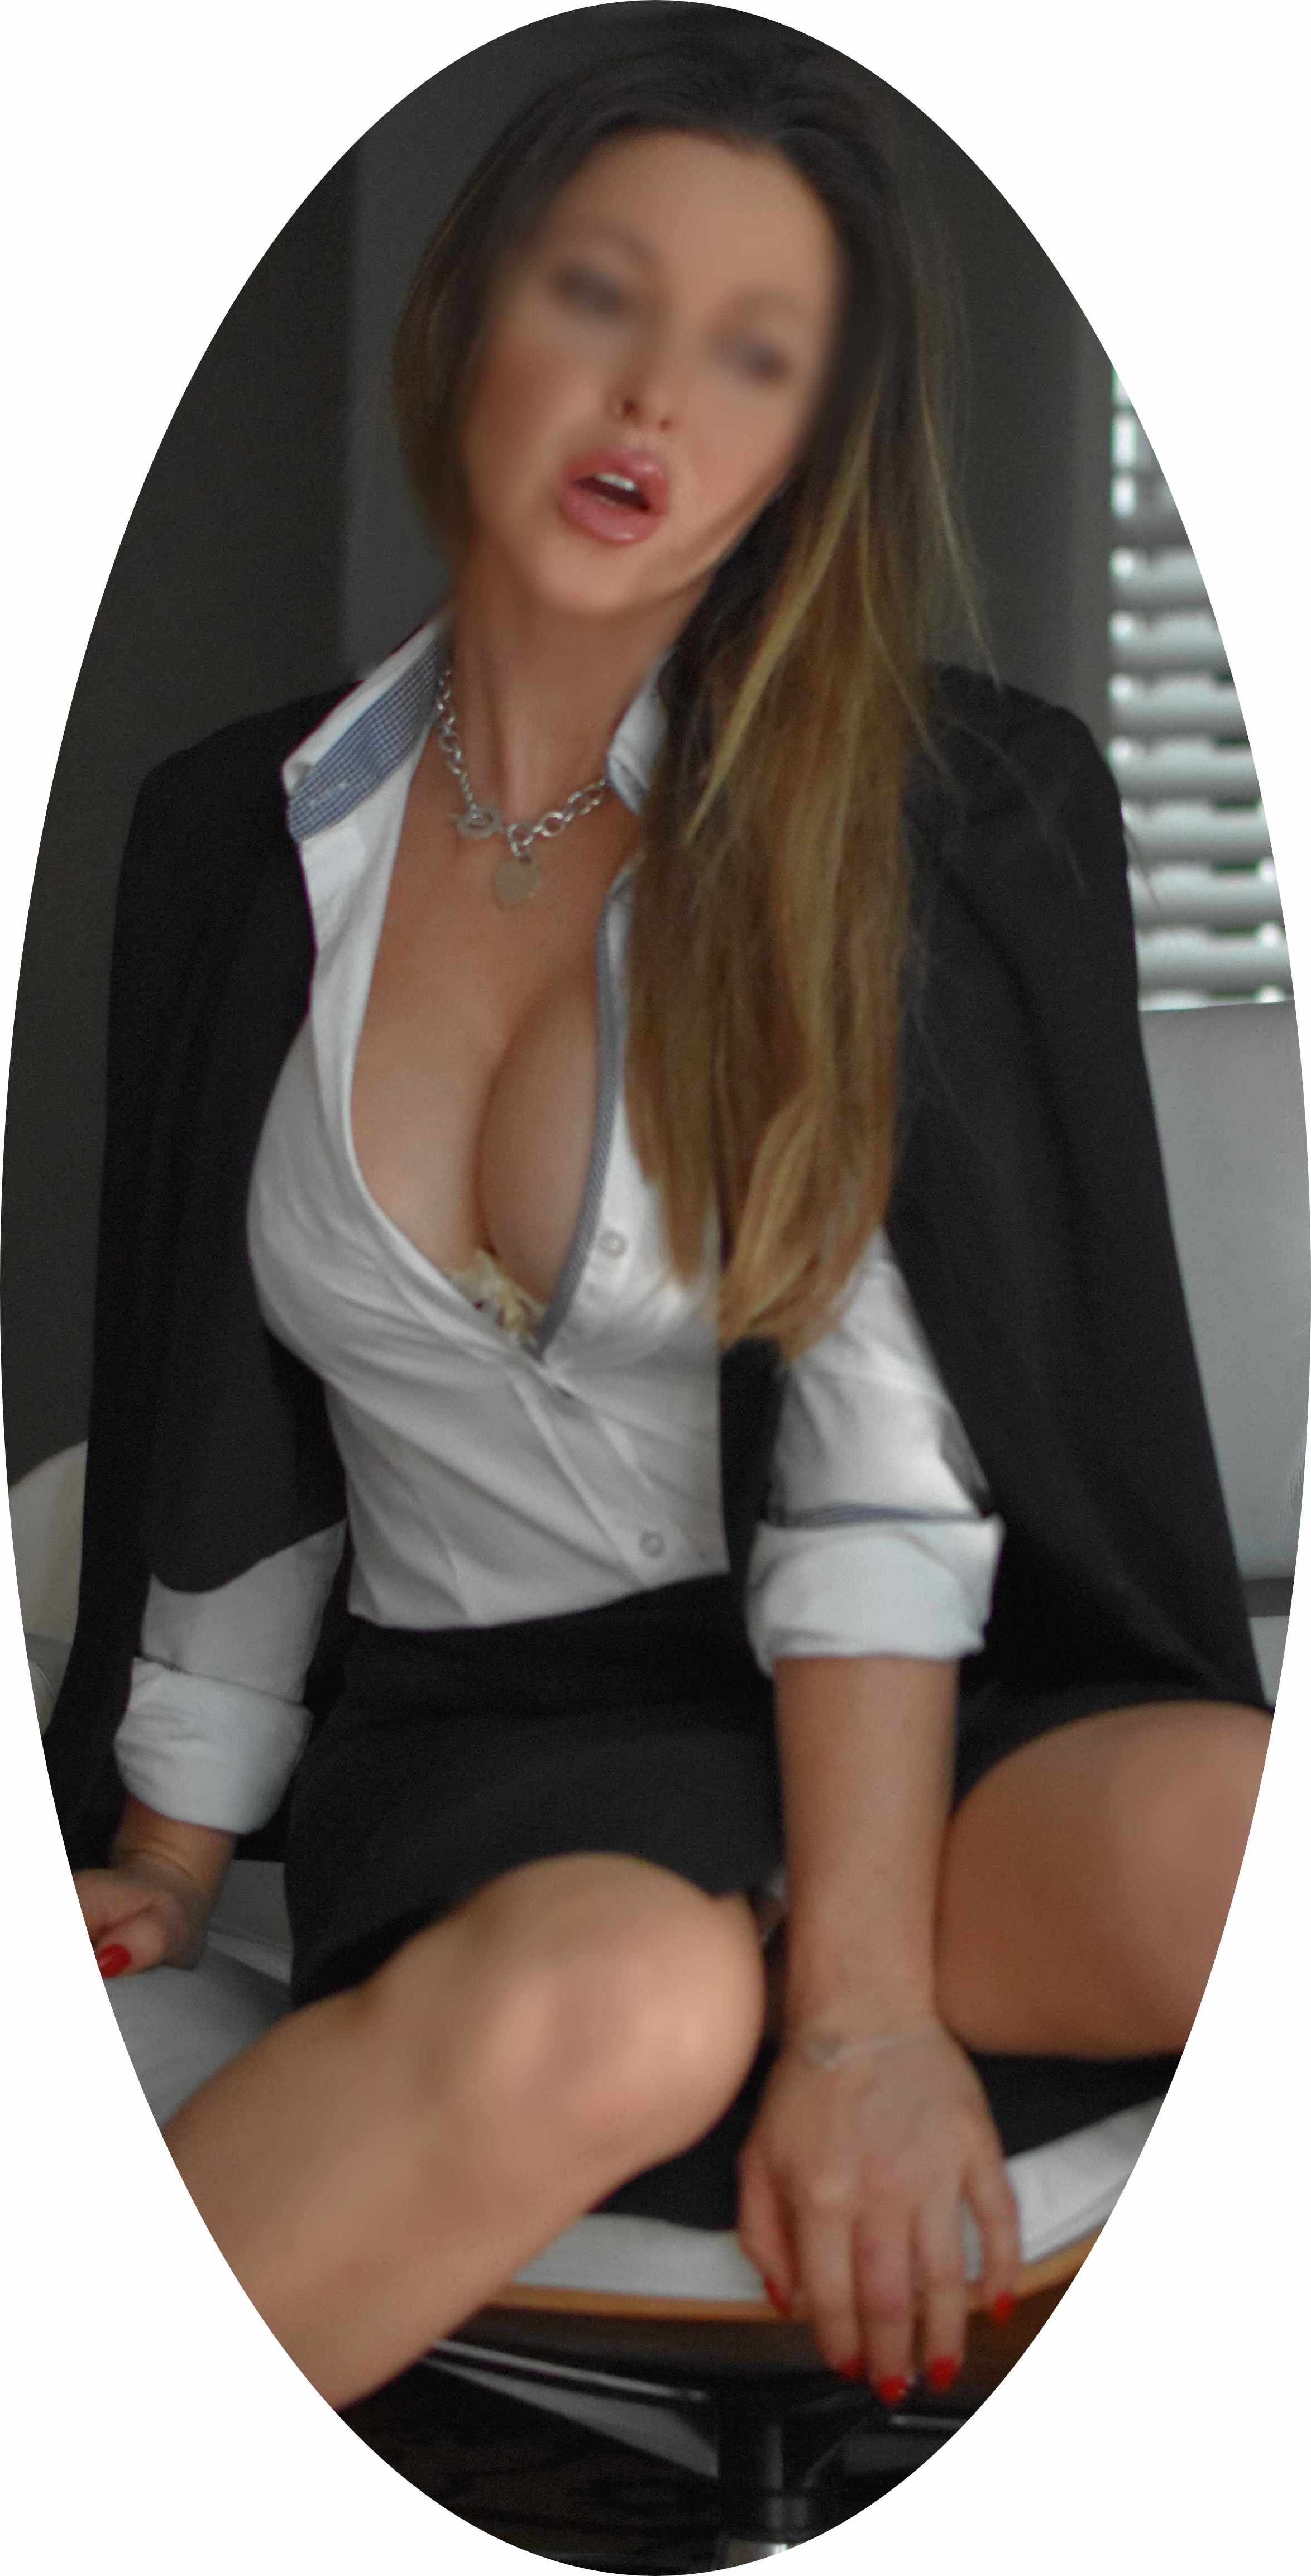 available to provide your most intimate and elaborate companion wishes - call to action now